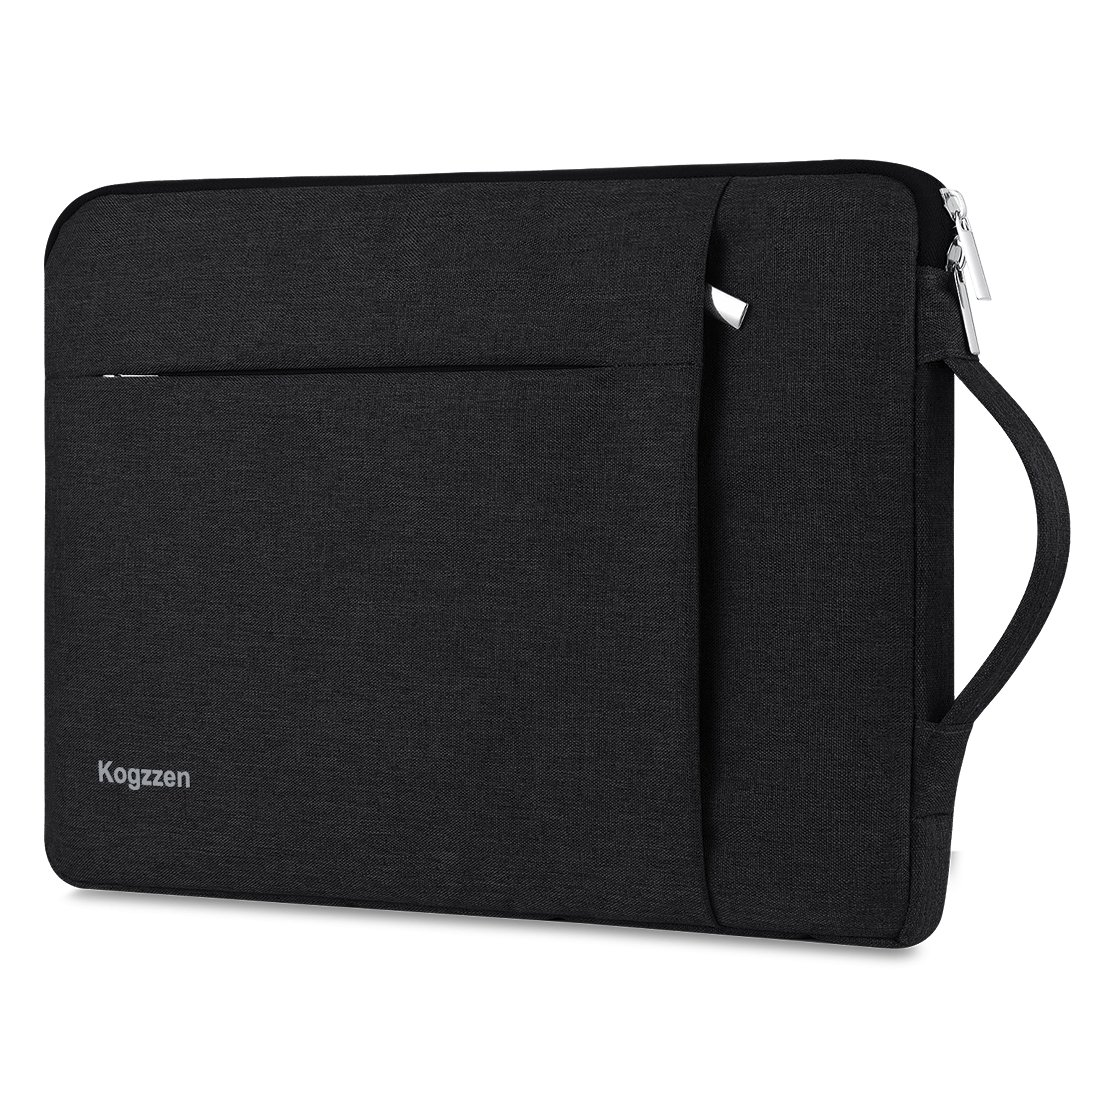 Kogzzen 13-13.5 Inch Laptop Sleeve with Handle for MacBook Air 13.3/MacBook Pro 13.3/Surface Book 2 13.5/Surface Laptop 2017/iPad Pro 12.9, Dell HP Waterproof Shockproof Case carrying Bag - Black